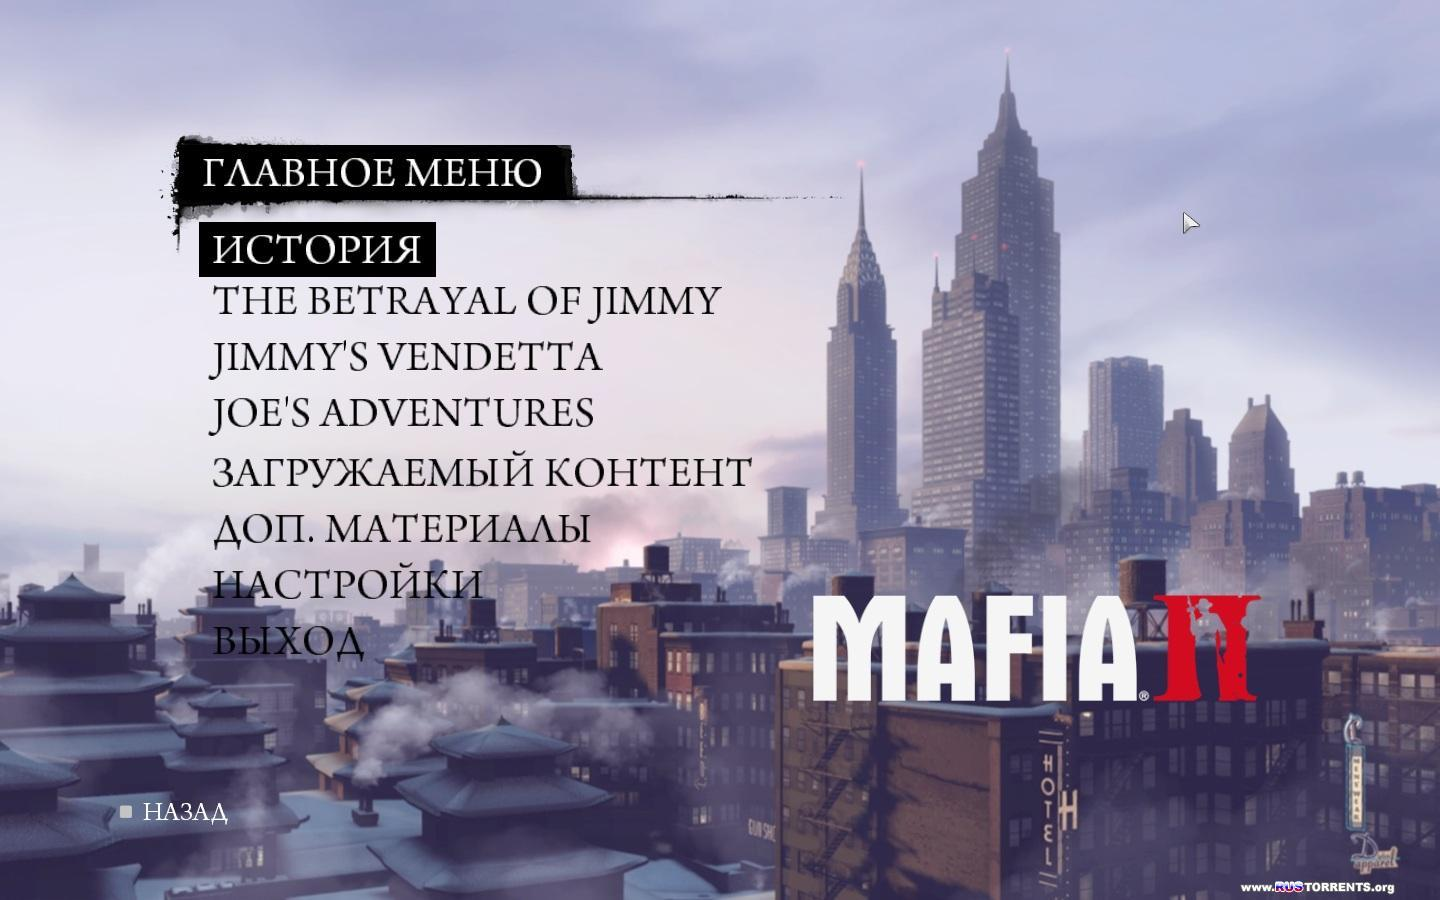 Mafia II Enhanced Edition | РС | Lossless Repack by -=Hooli G@n=- от Zlofenix